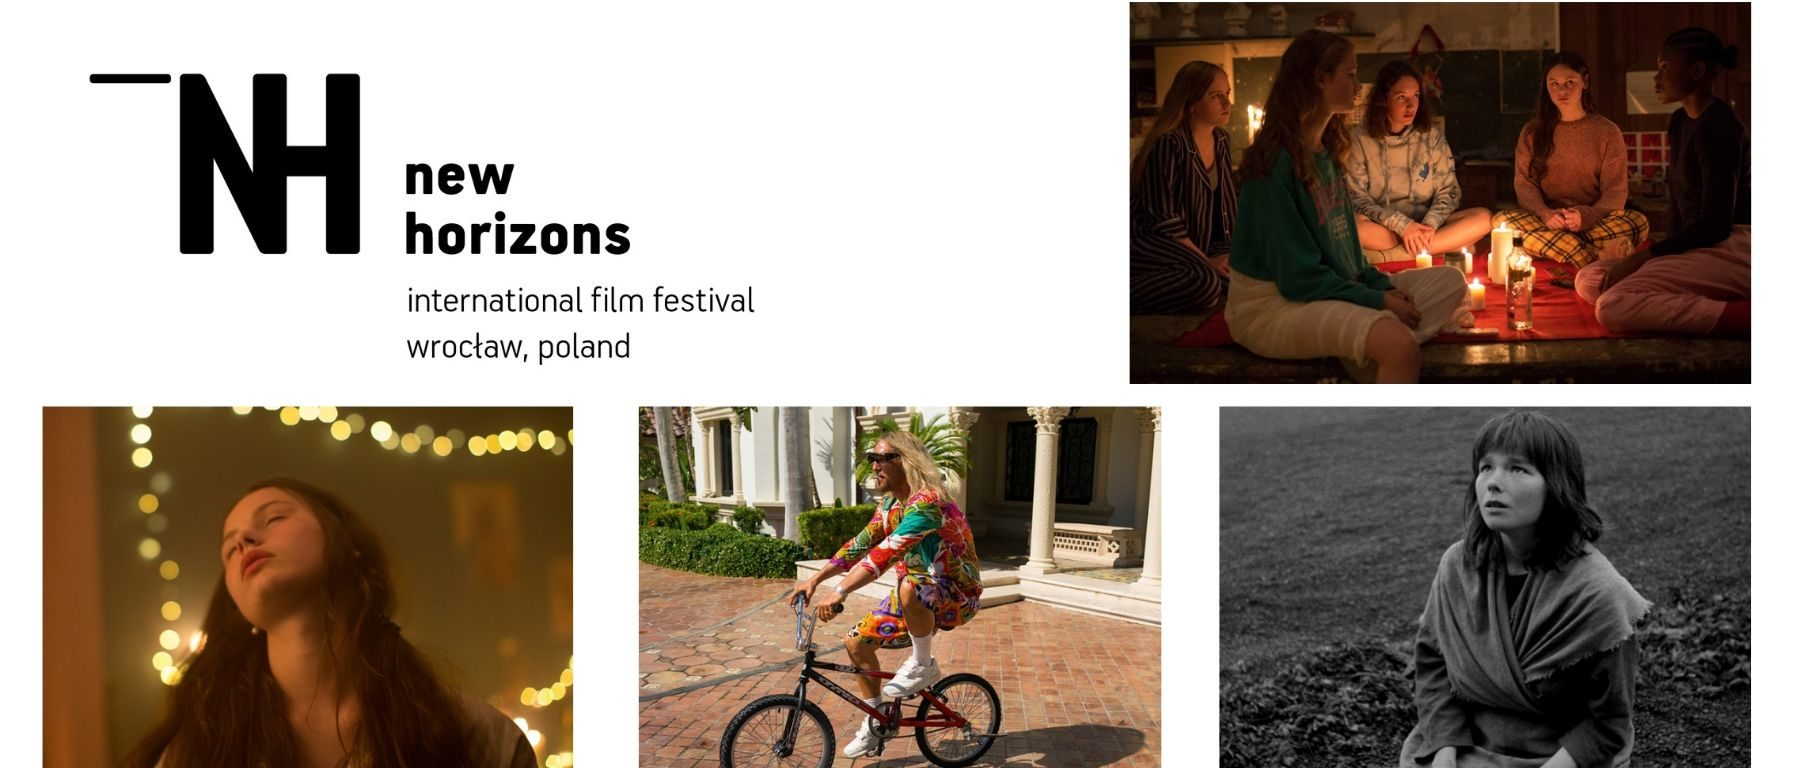 new horizons international film festival by cultural hater